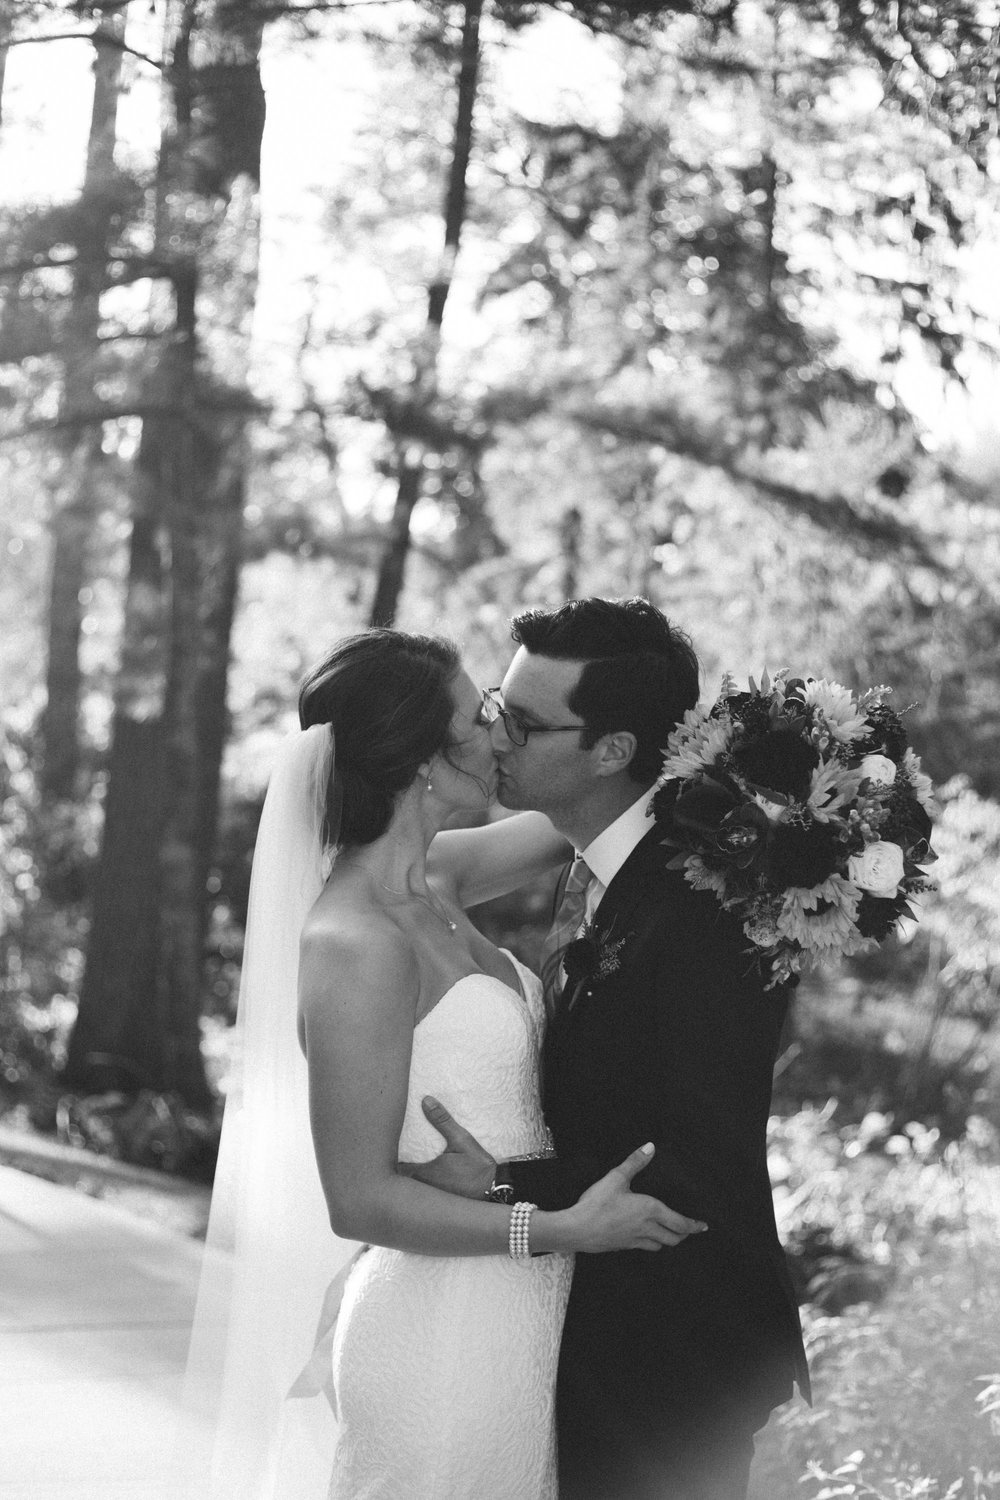 Romantic wedding at Grand View Lodge, photography by Britt DeZeeuw